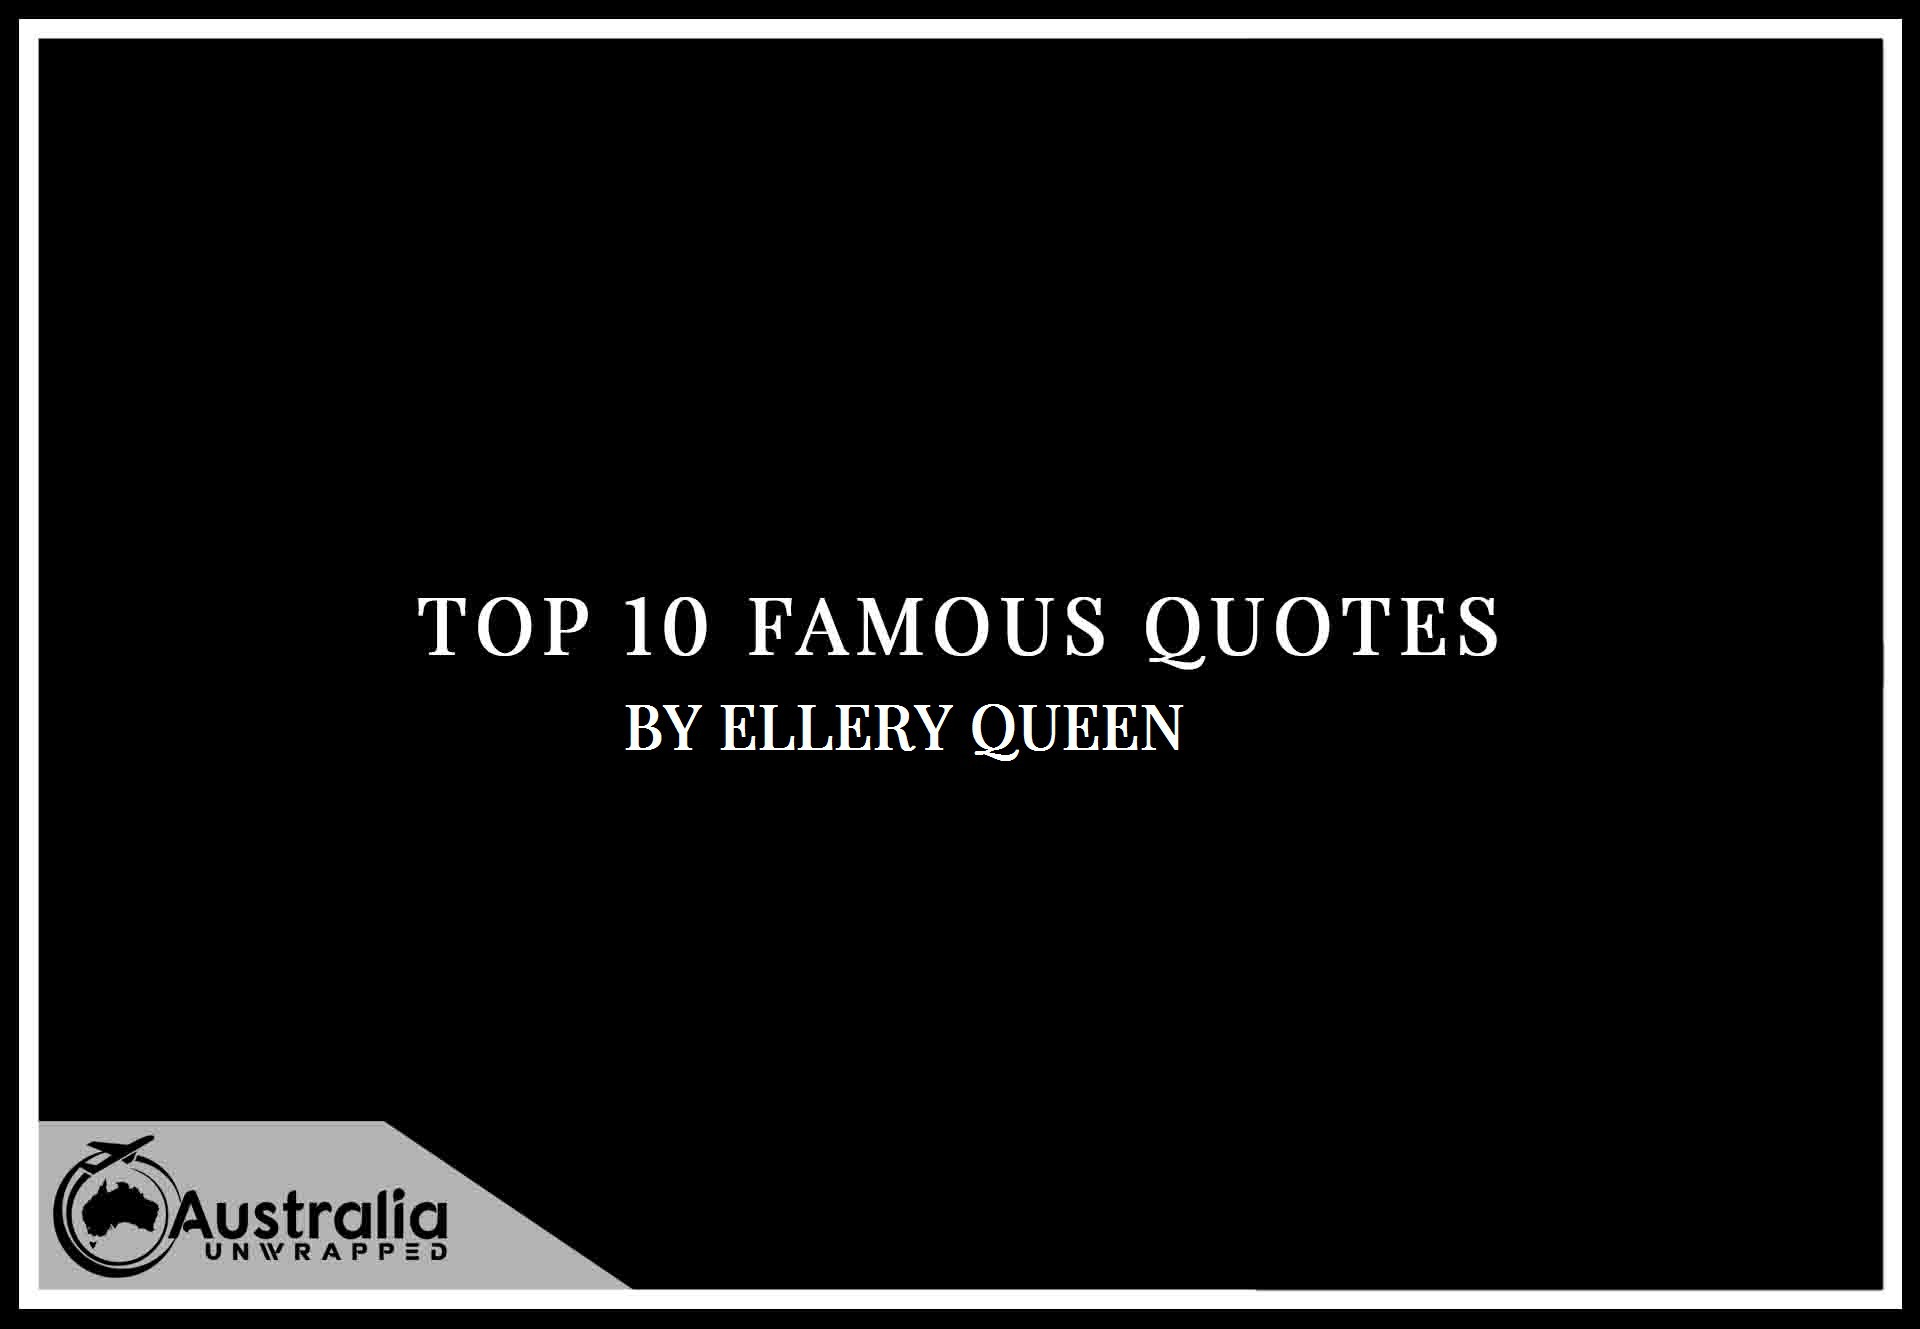 Ellery Queen's Top 10 Popular and Famous Quotes